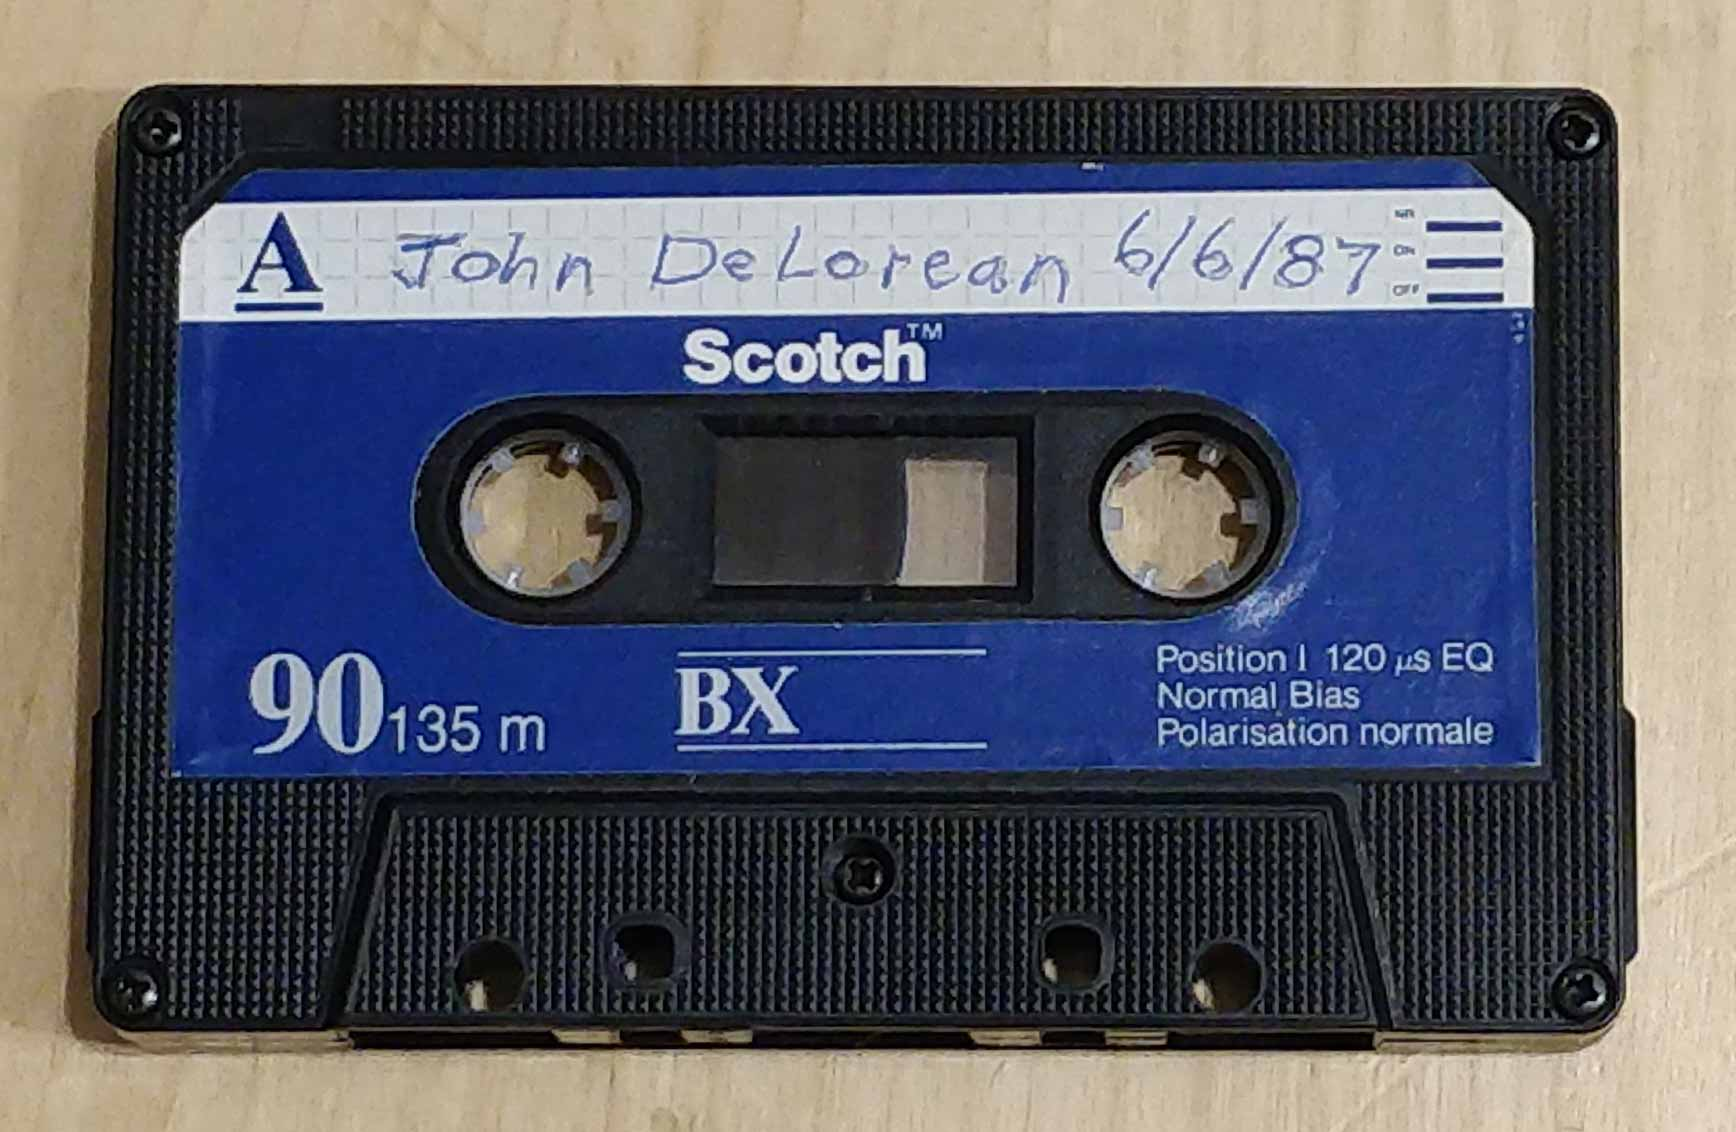 John DeLorean tape | DeLoreanTalk.com